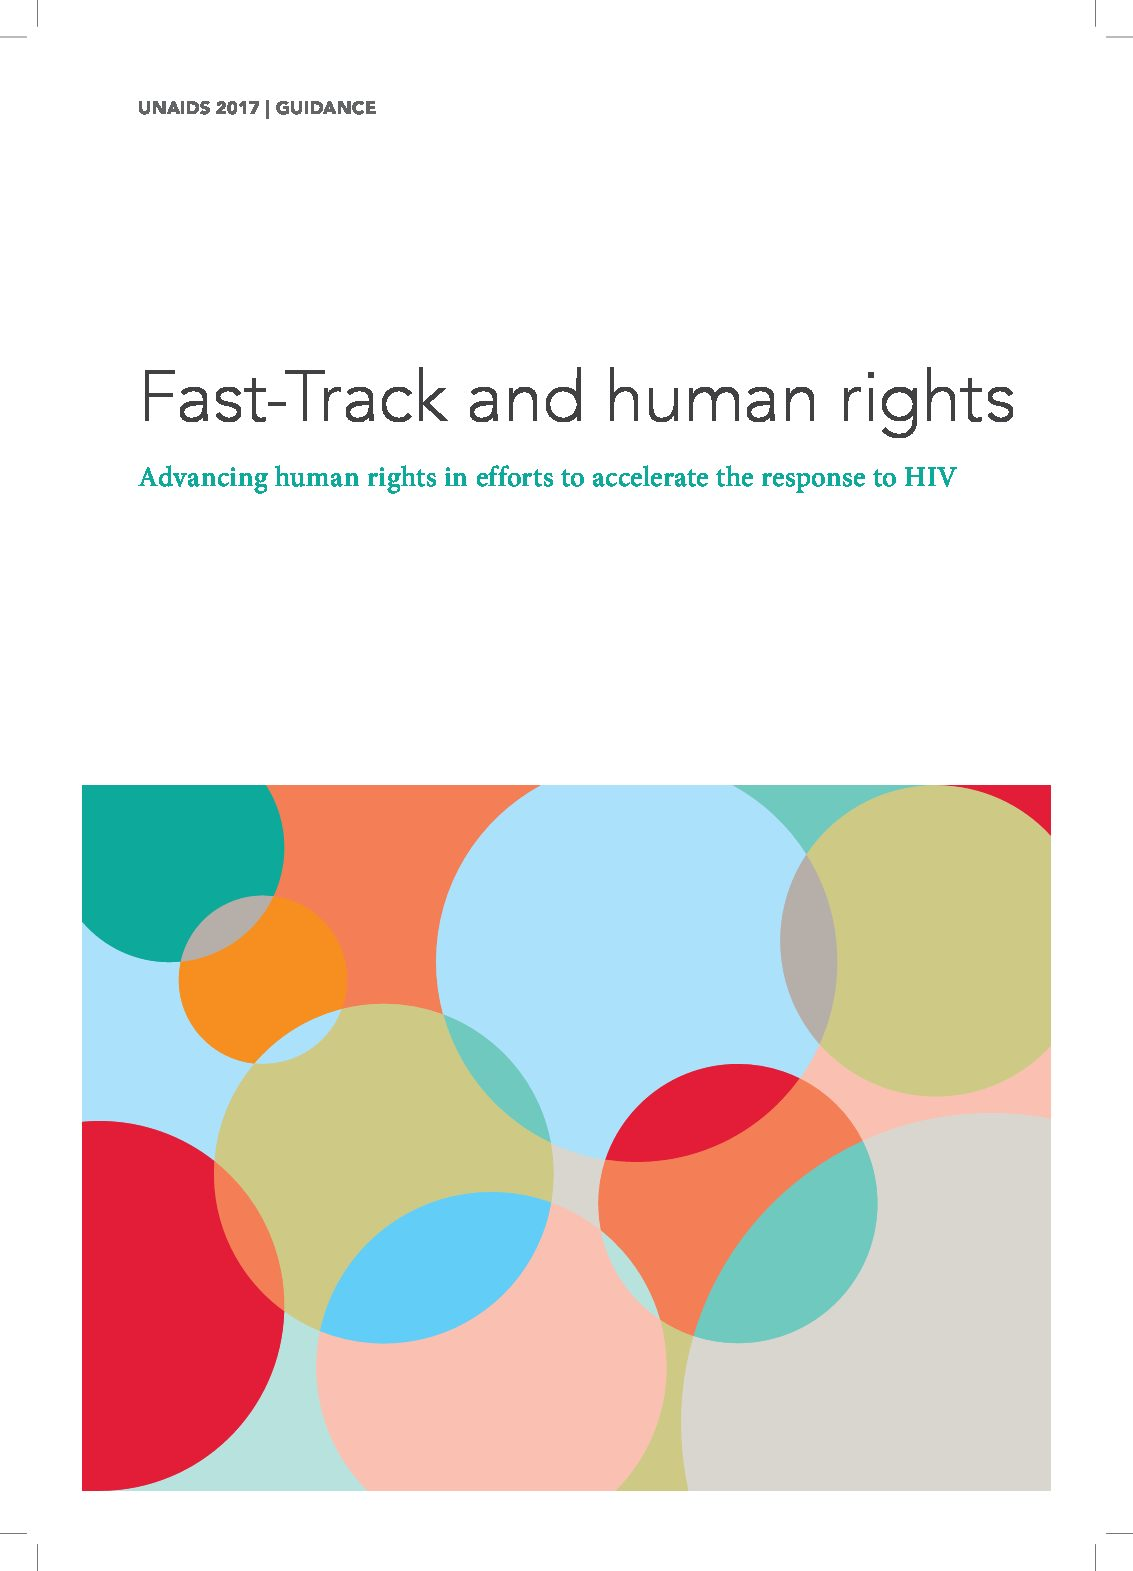 FAST-TRACK AND HUMAN RIGHTS. Advancing human rights in efforts to accelerate the response to HIV